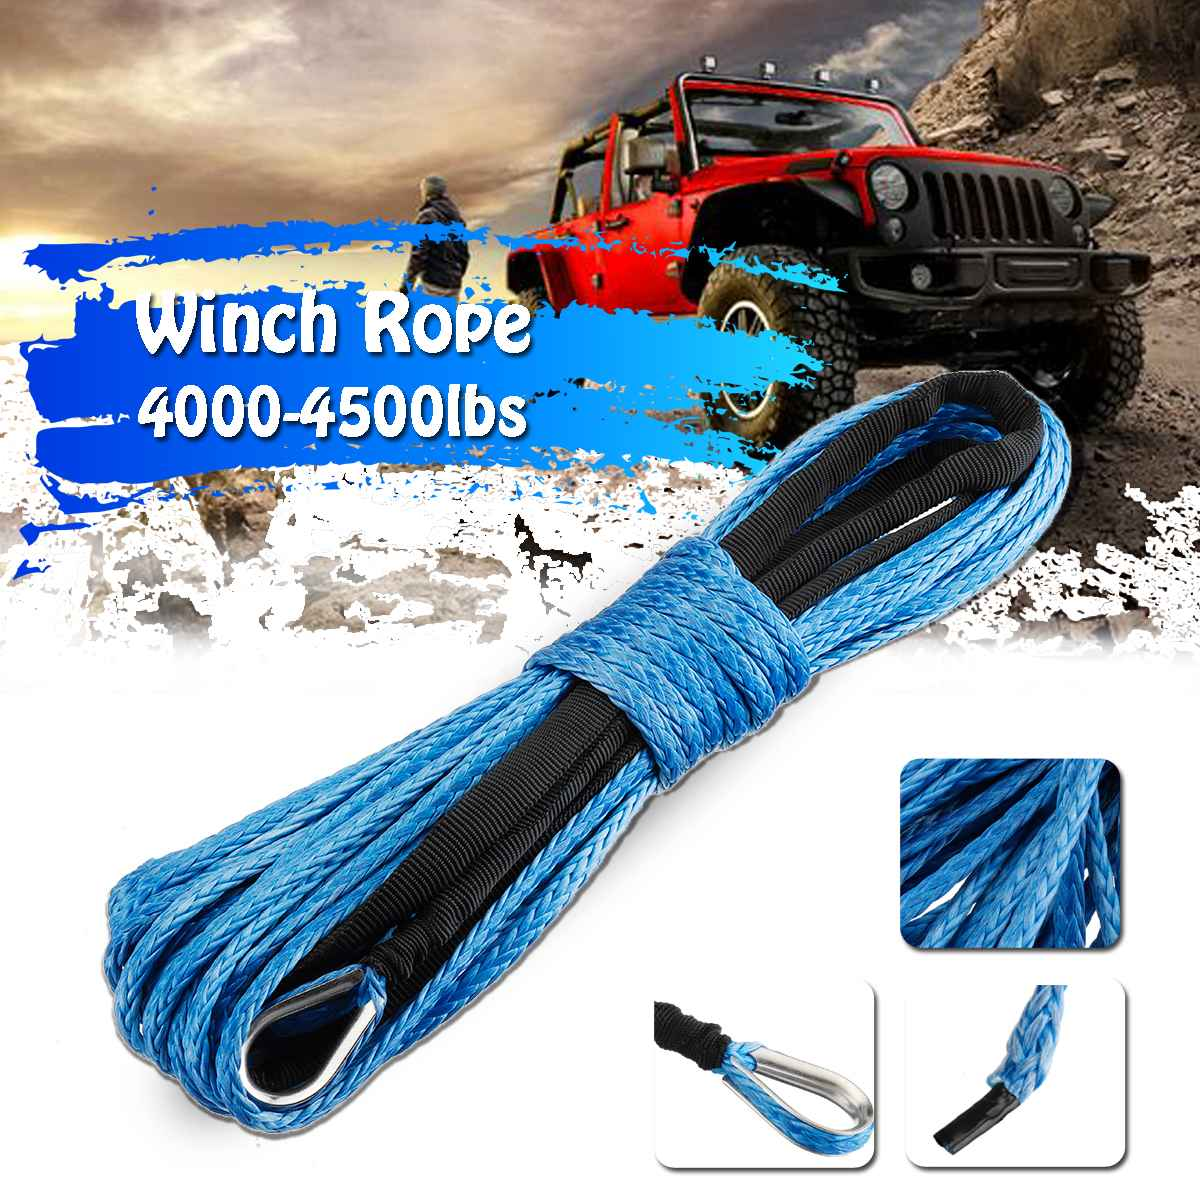 15m 7700LBs Winch Rope String Line Cable With Sheath Synthetic Towing Rope Car Wash Maintenance String For ATV UTV Off-Road